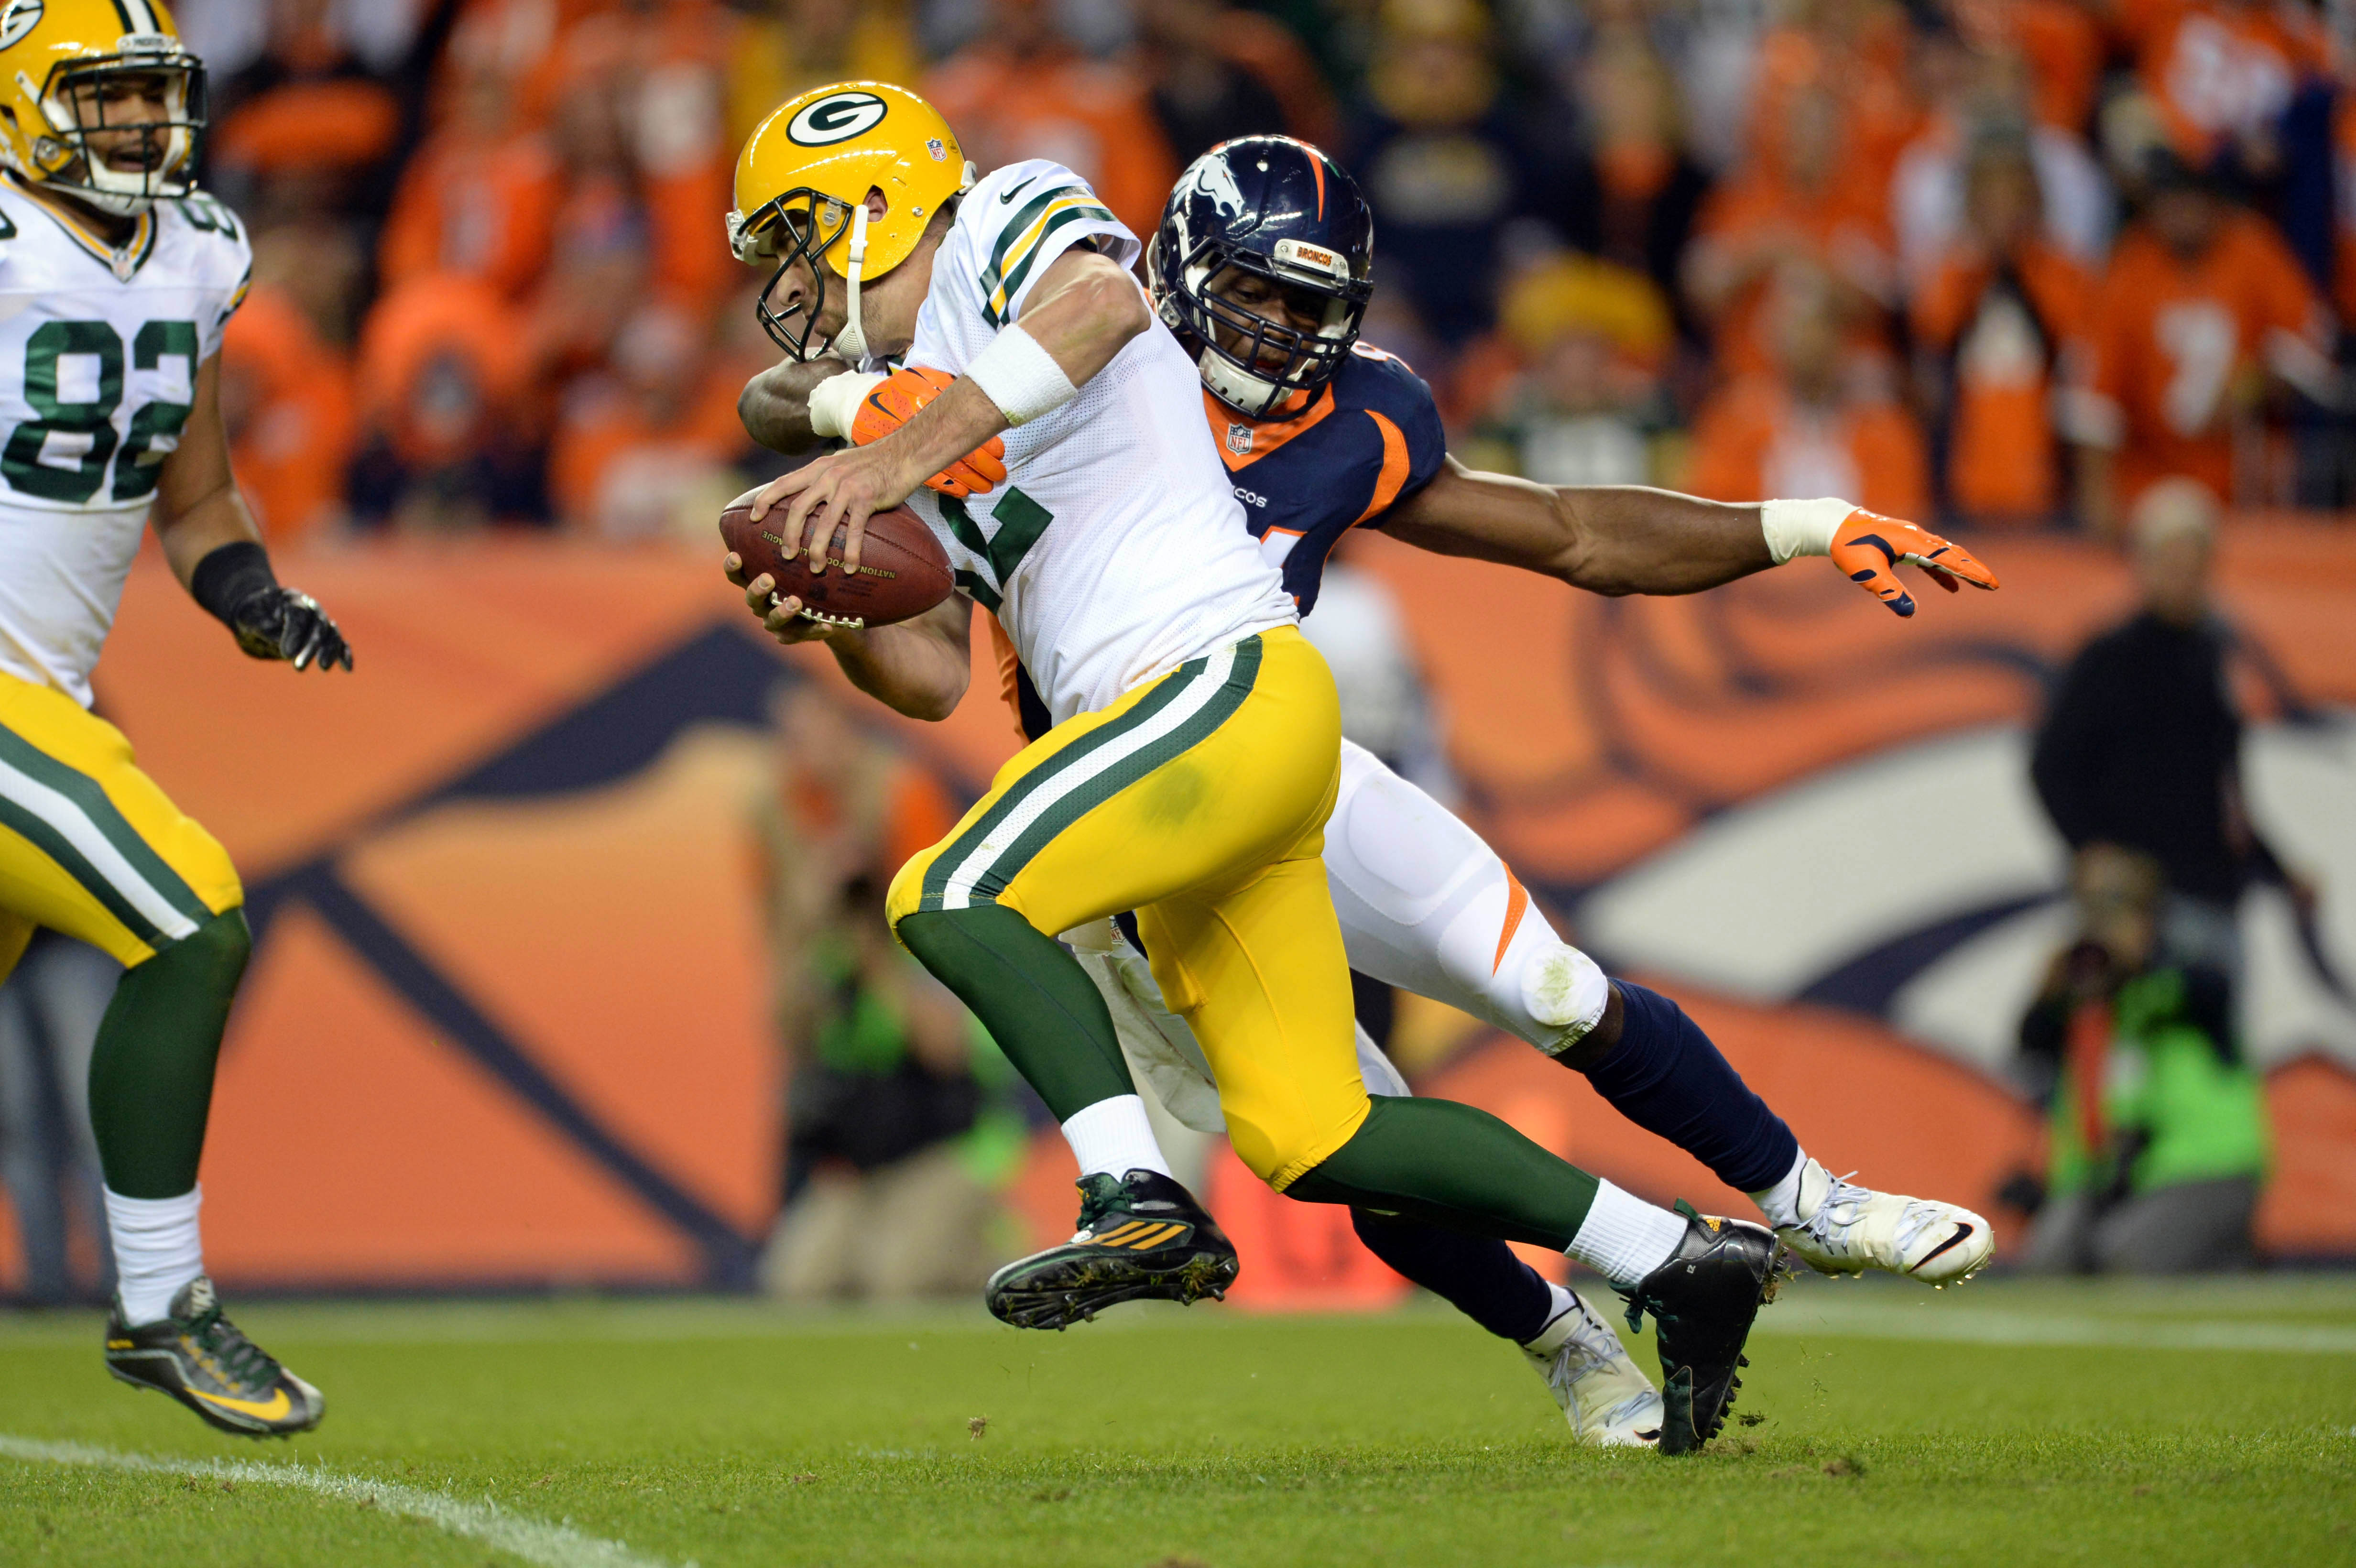 Nov 1, 2015; Denver, CO, USA; Denver Broncos outside linebacker DeMarcus Ware (94) sacks Green Bay Packers quarterback Aaron Rodgers (12) in the fourth quarter at Sports Authority Field at Mile High. The Broncos defeated the Packer 29-10. Mandatory Credit: Ron Chenoy-USA TODAY Sports